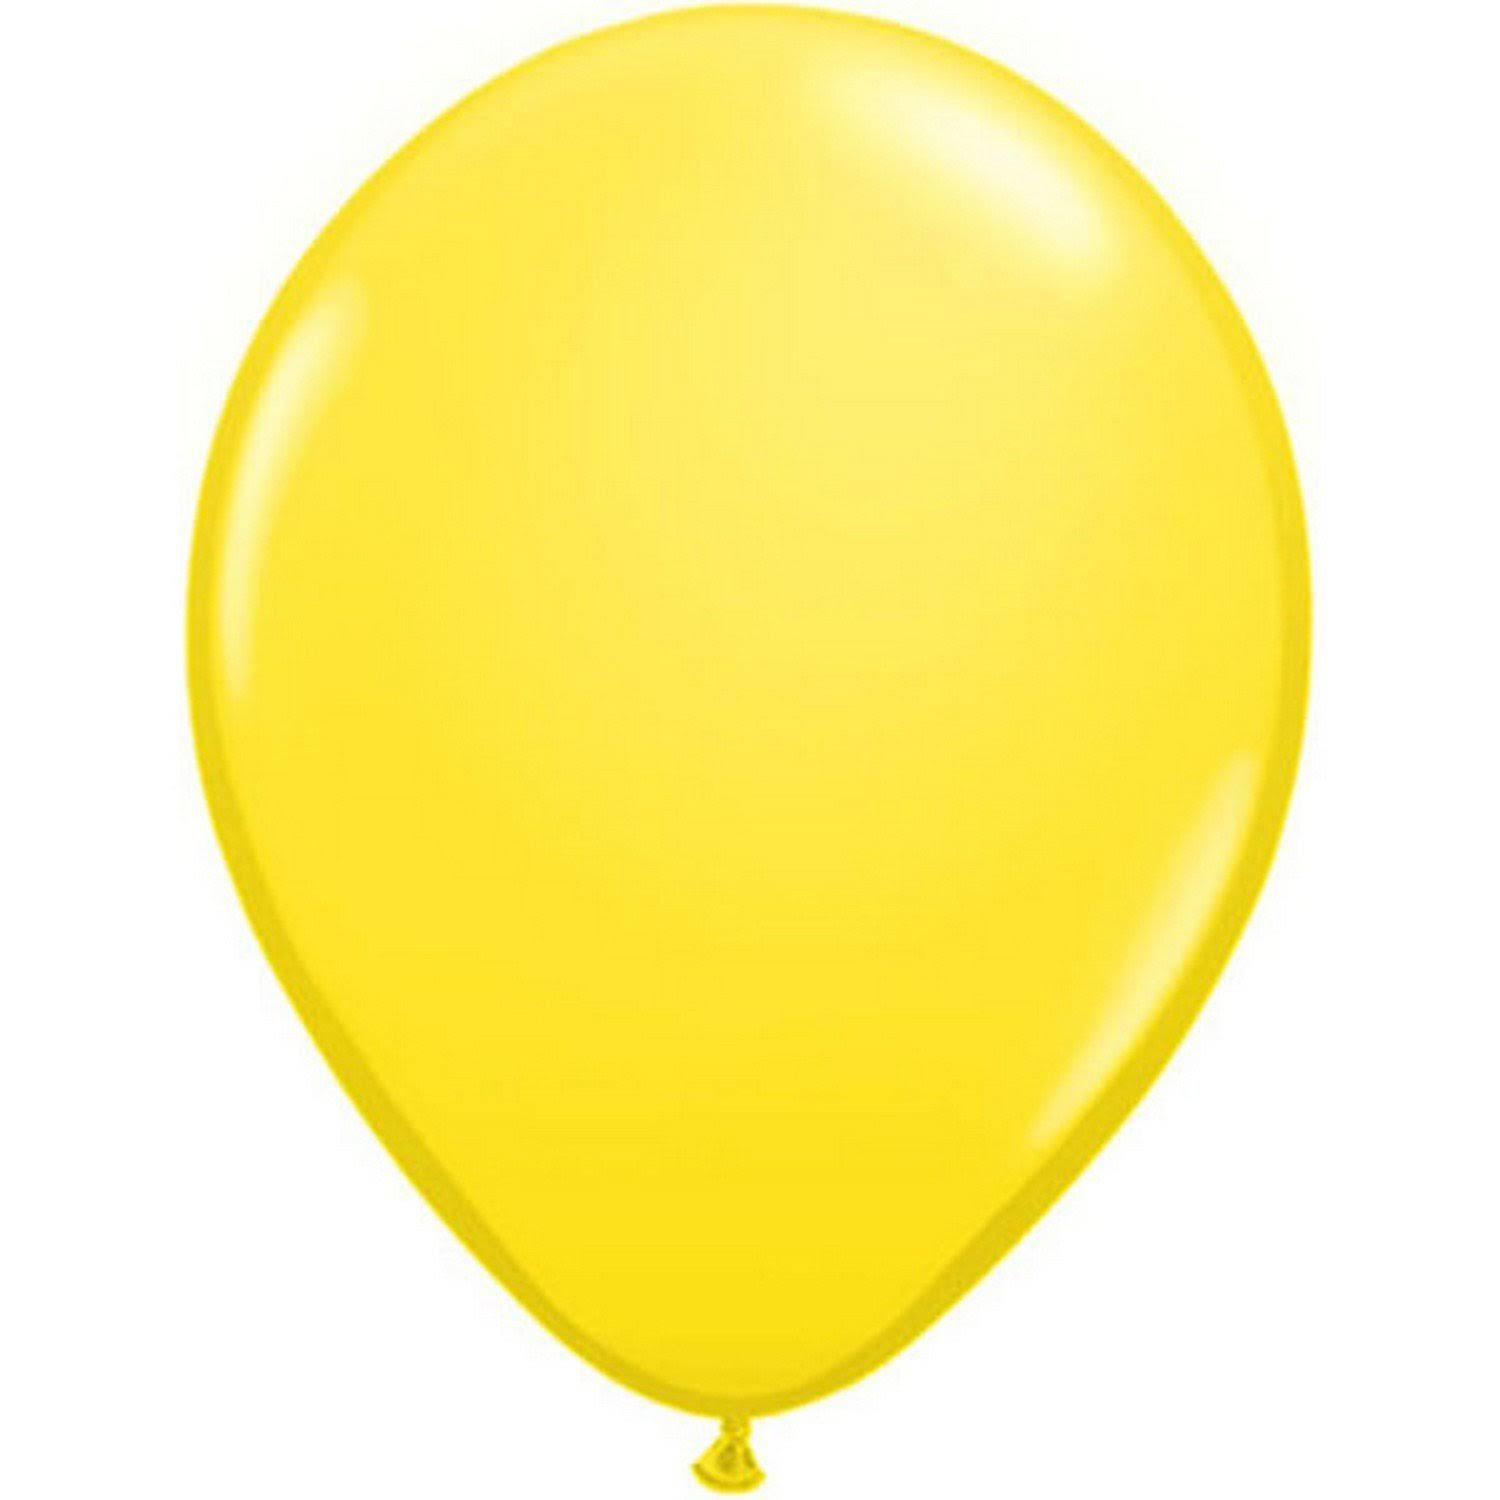 "Qualatex Round Balloons - 11"", Yellow, Pack of 100"